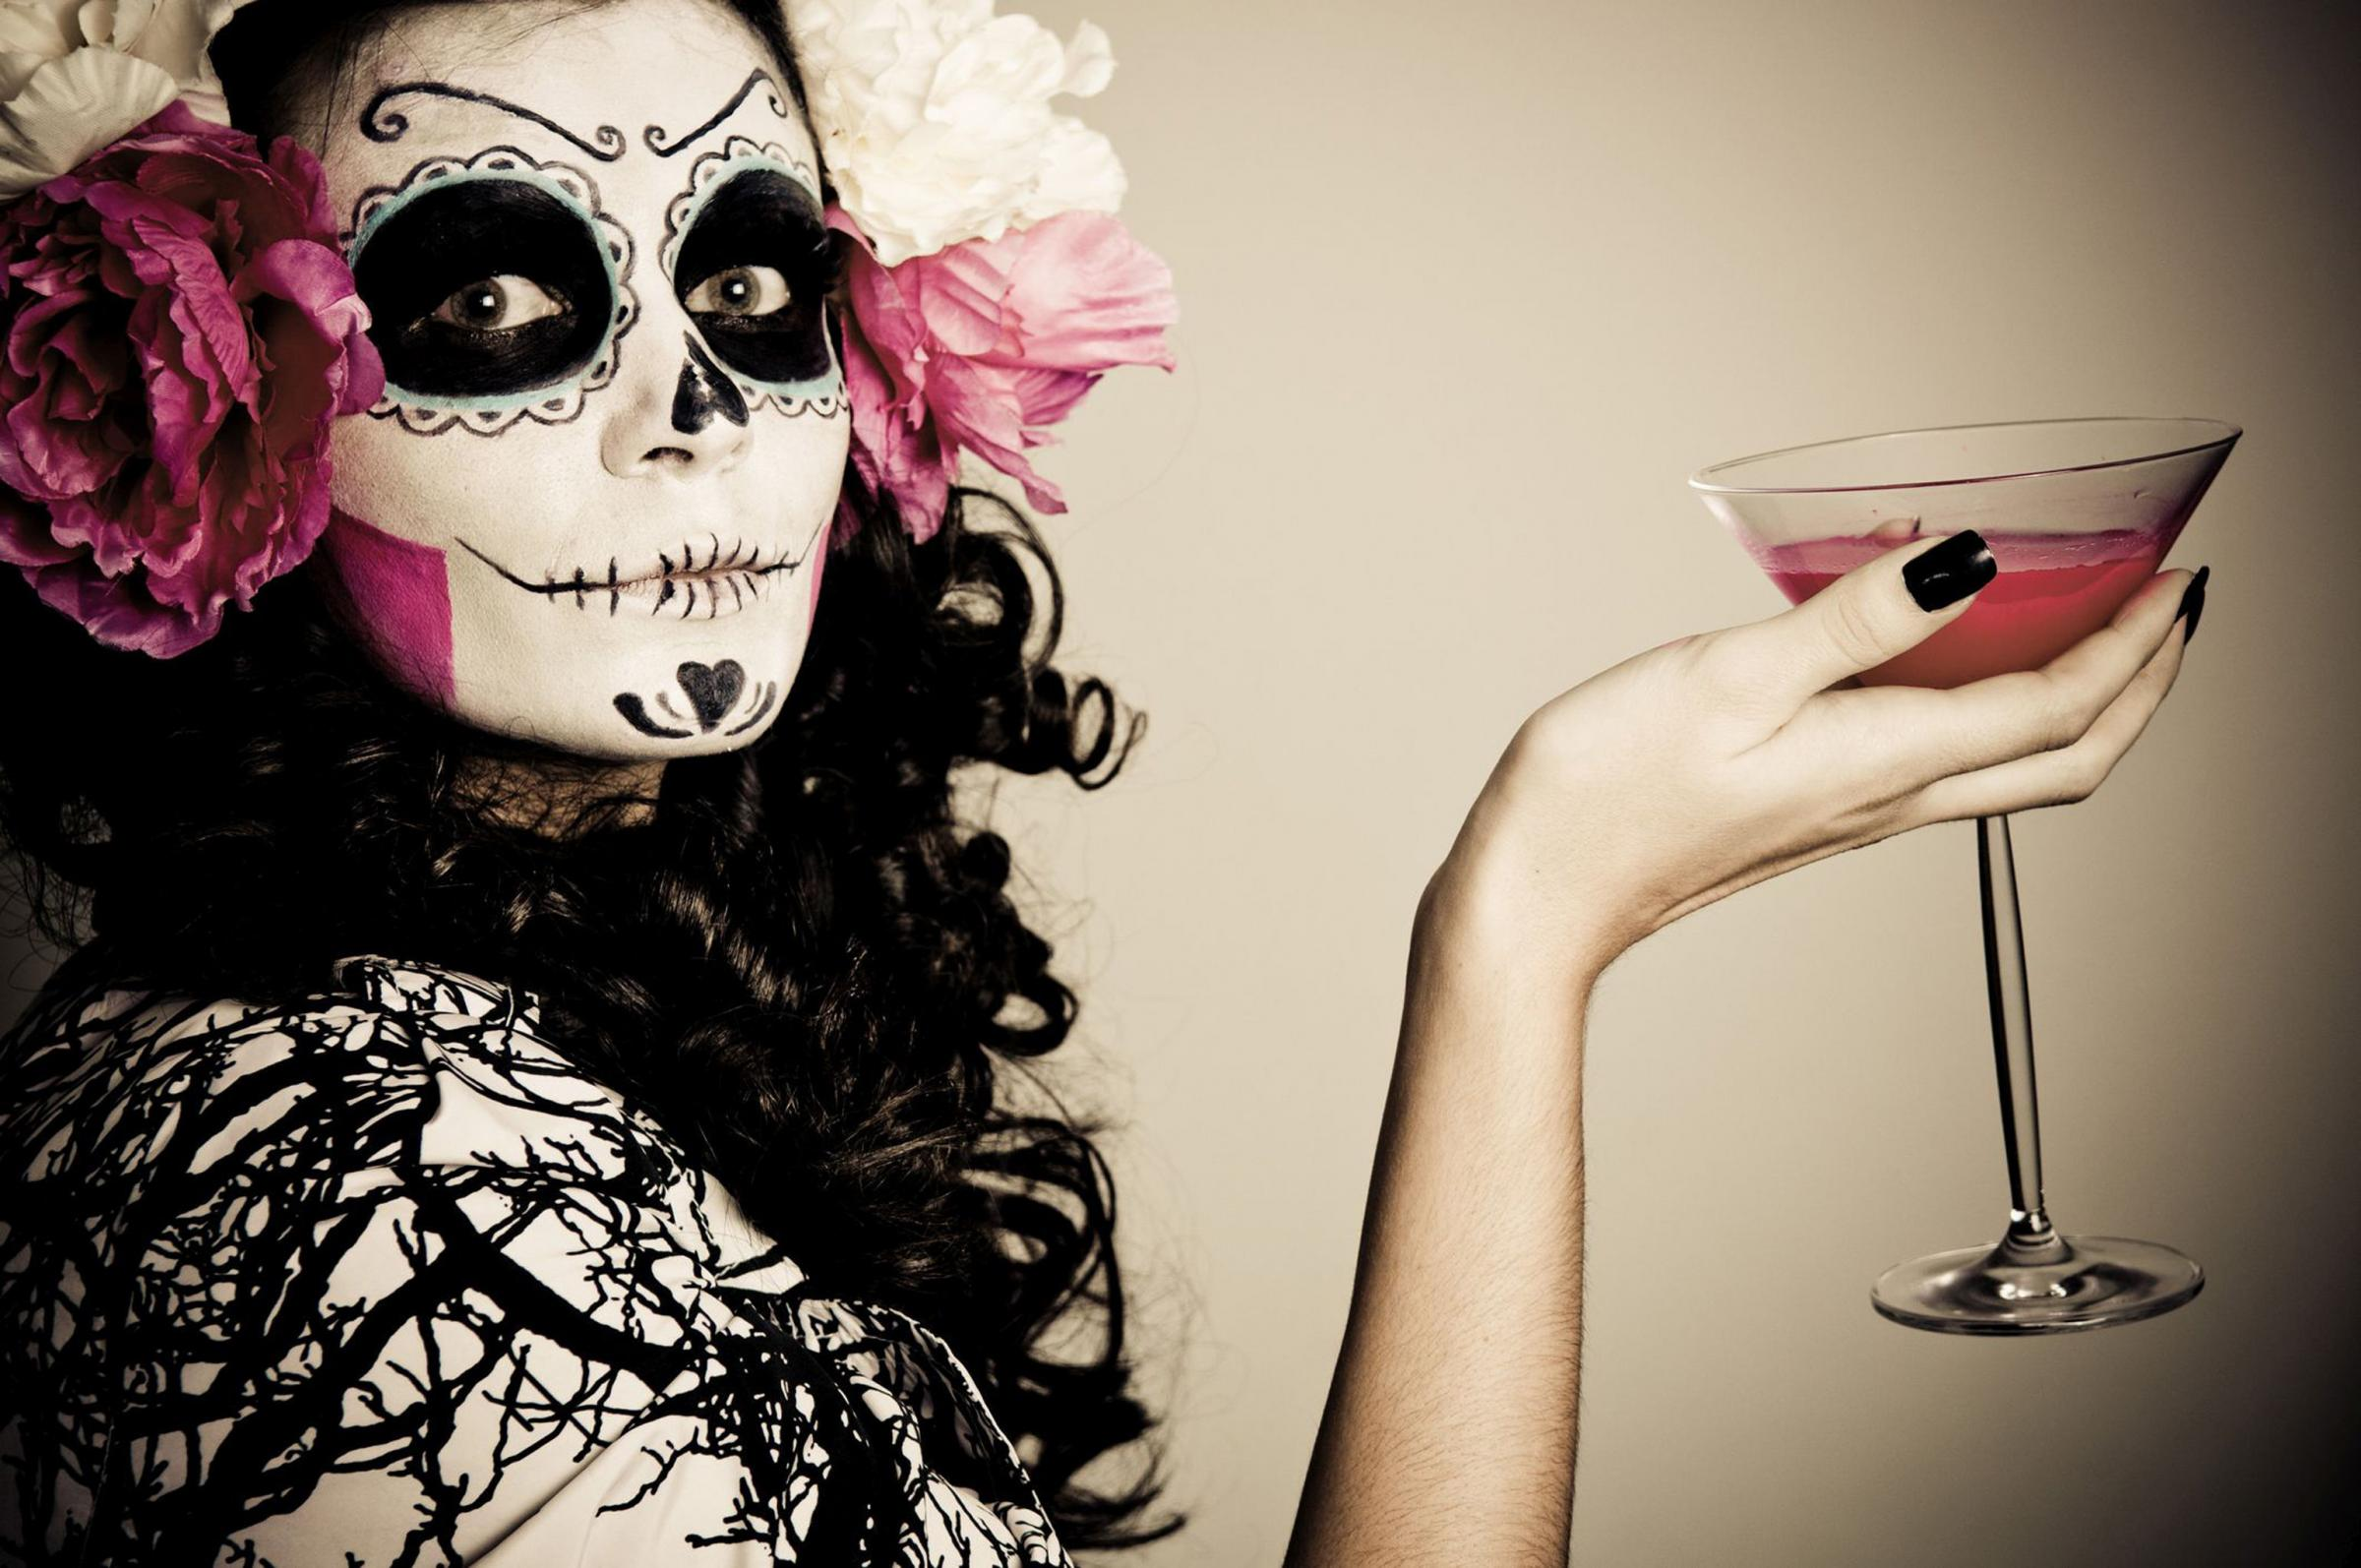 Wicked wines, spooky spirits and devilishly divine drinks for Halloween